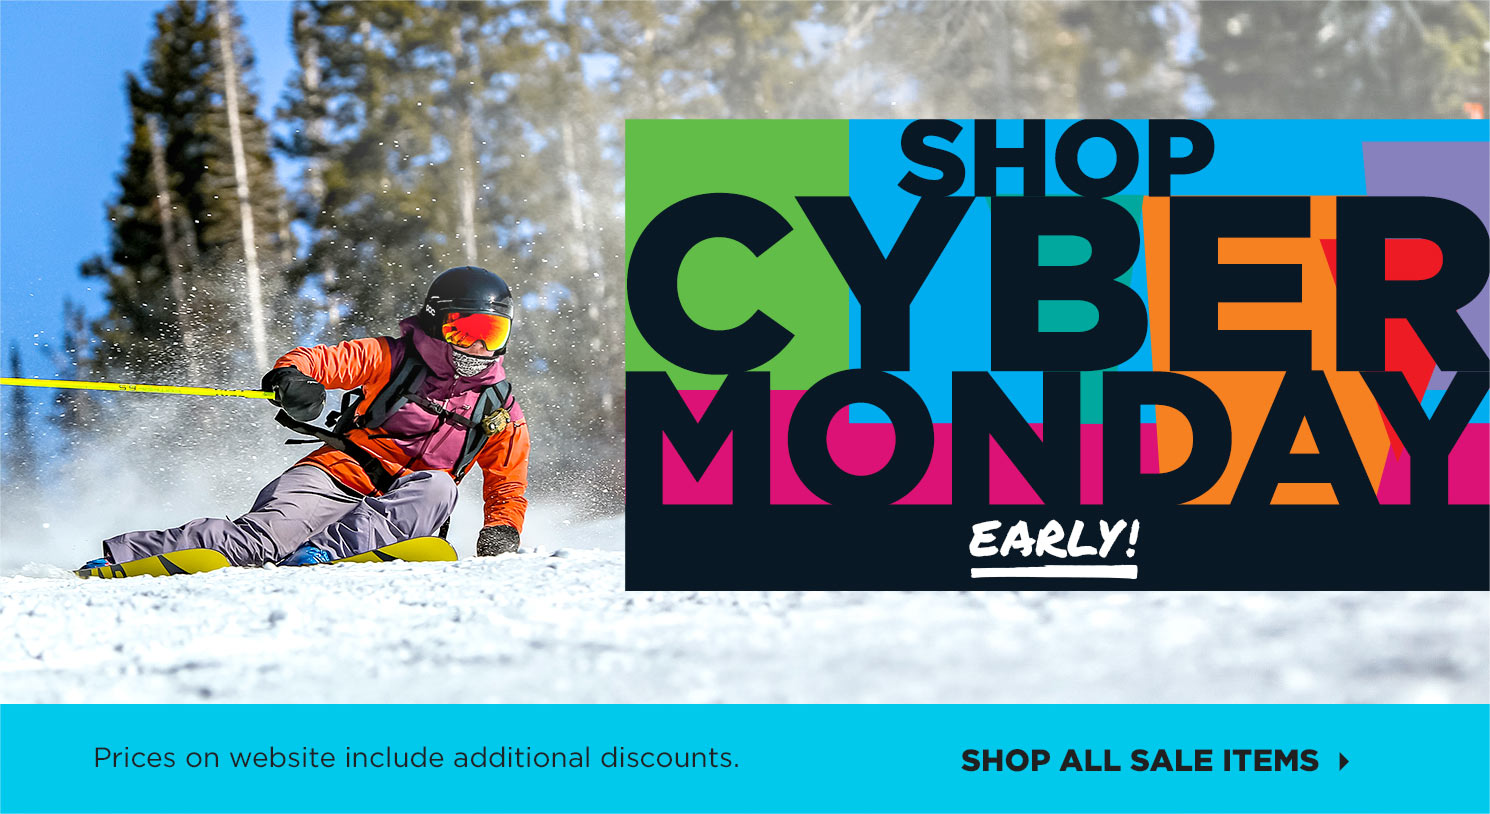 Shop Cyber Monday EARLY!